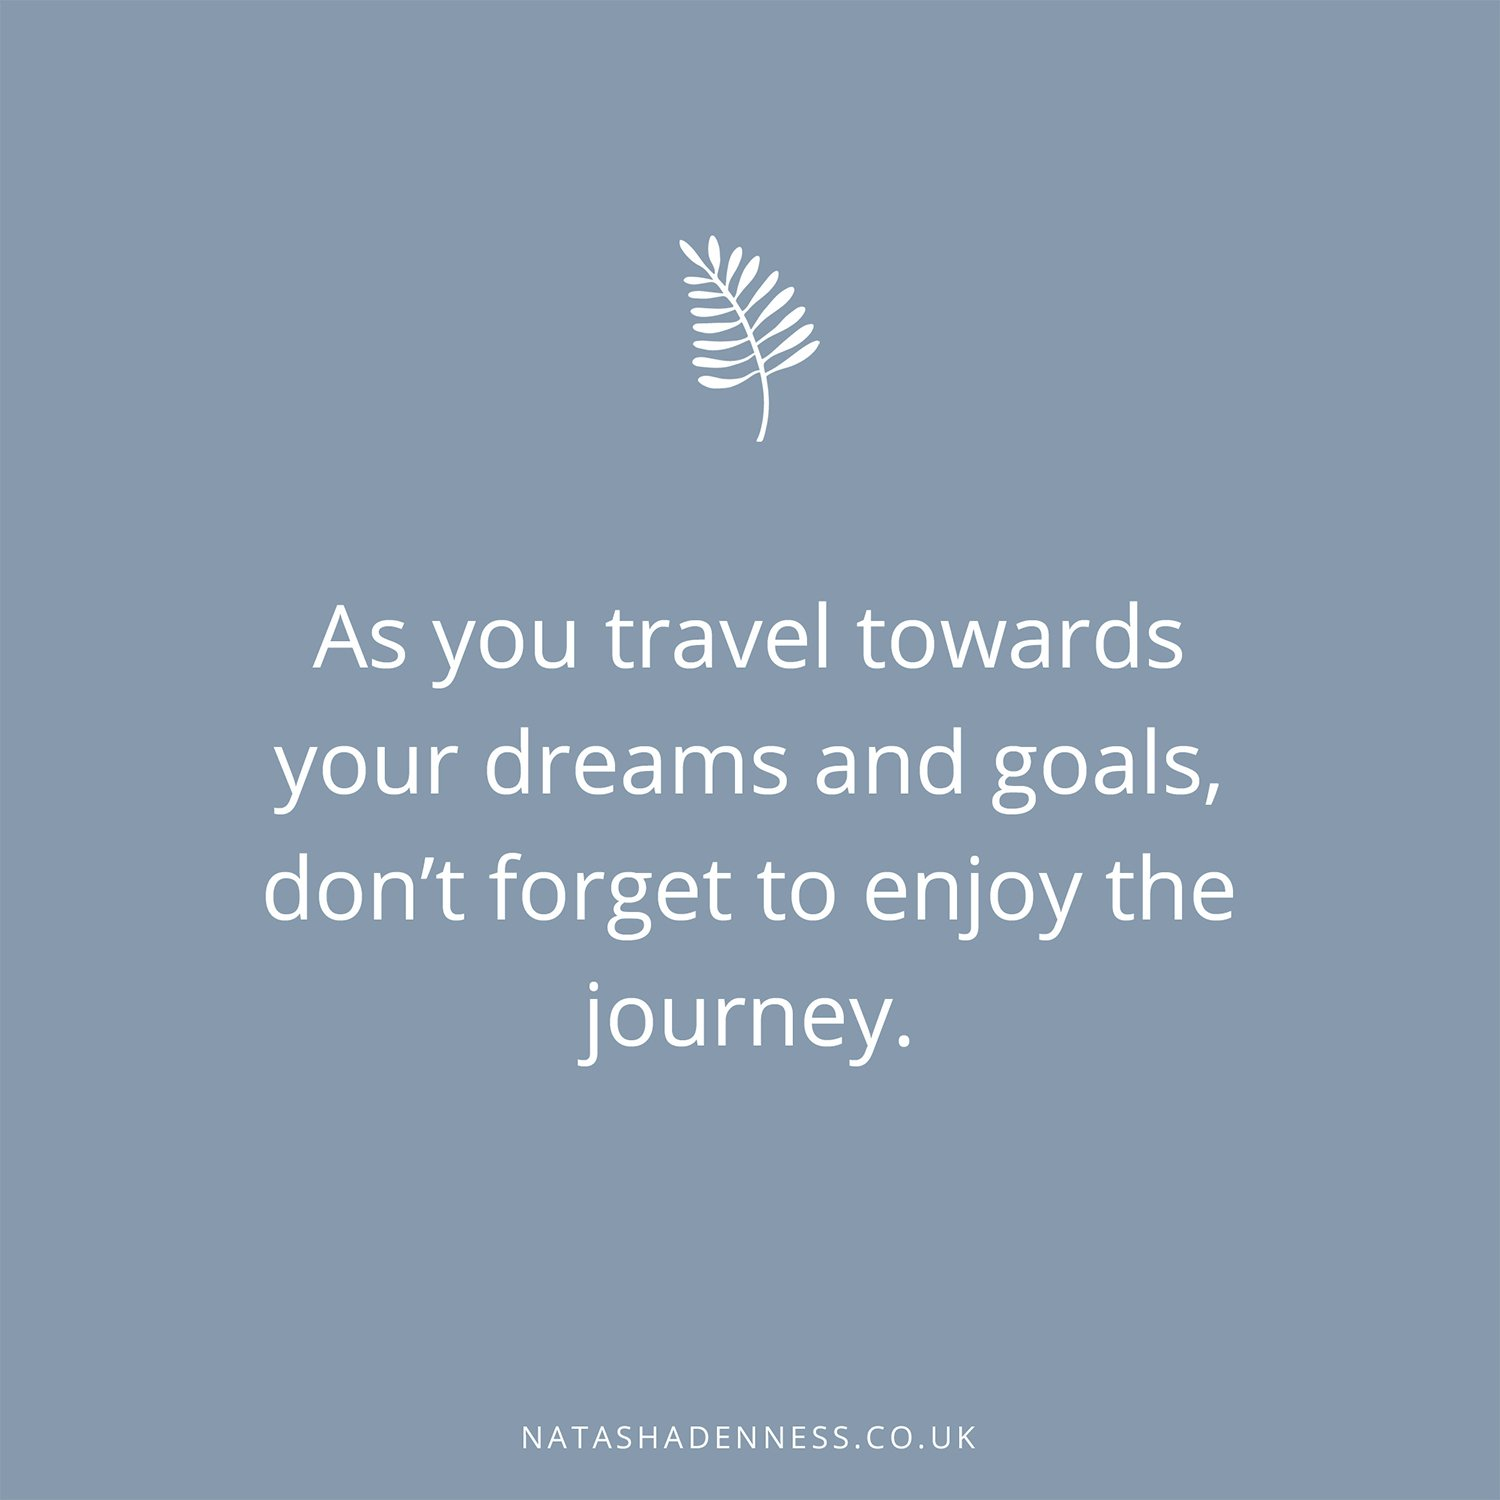 As you travel towards your dreams and goals, don't forget to enjoy the journey | Natasha Denness Coaching